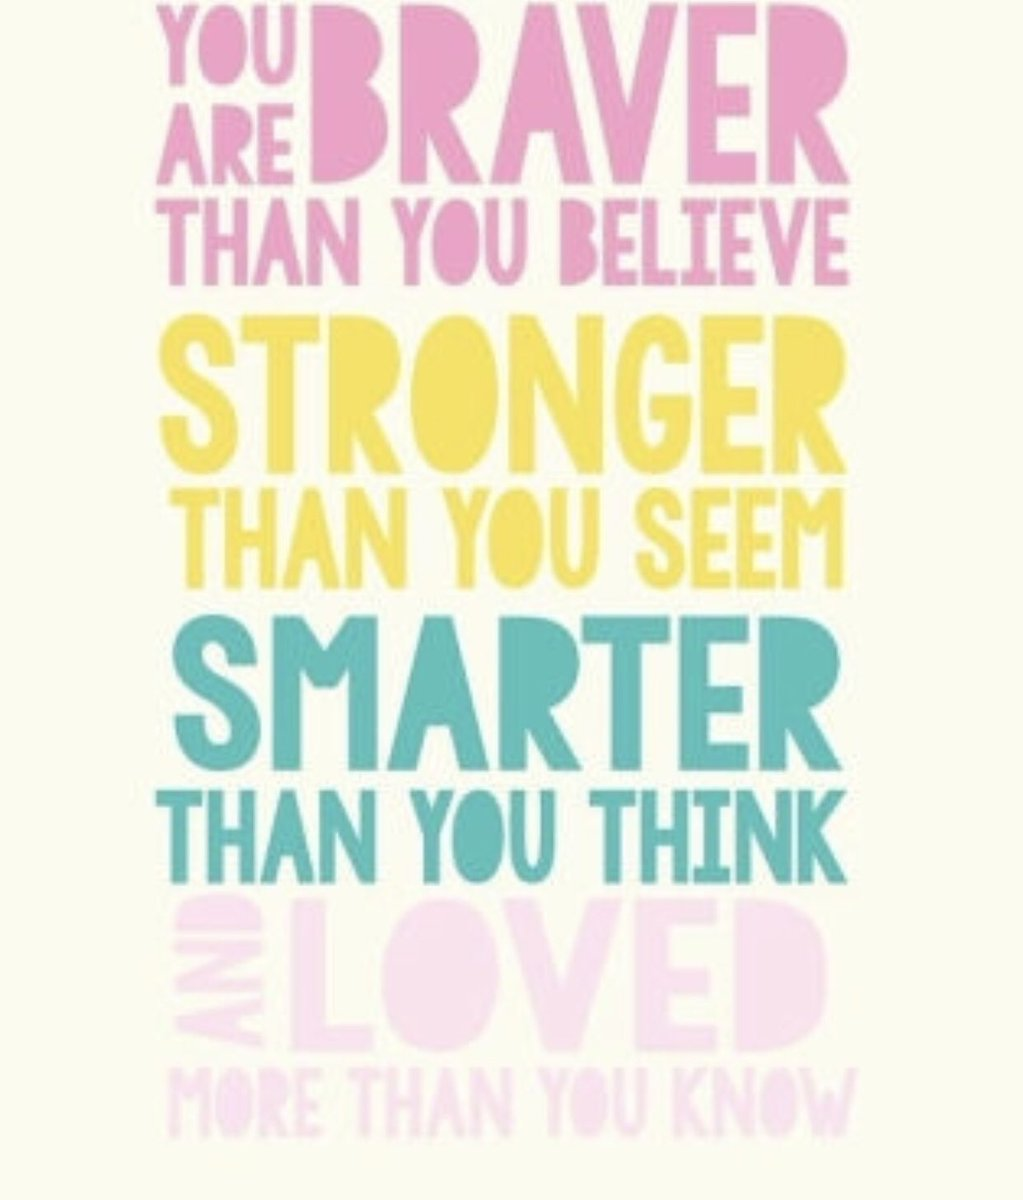 Happy Monday Dragons! We miss all of your smiling faces. We hope you have a great week and stay well! 💕#mckproud